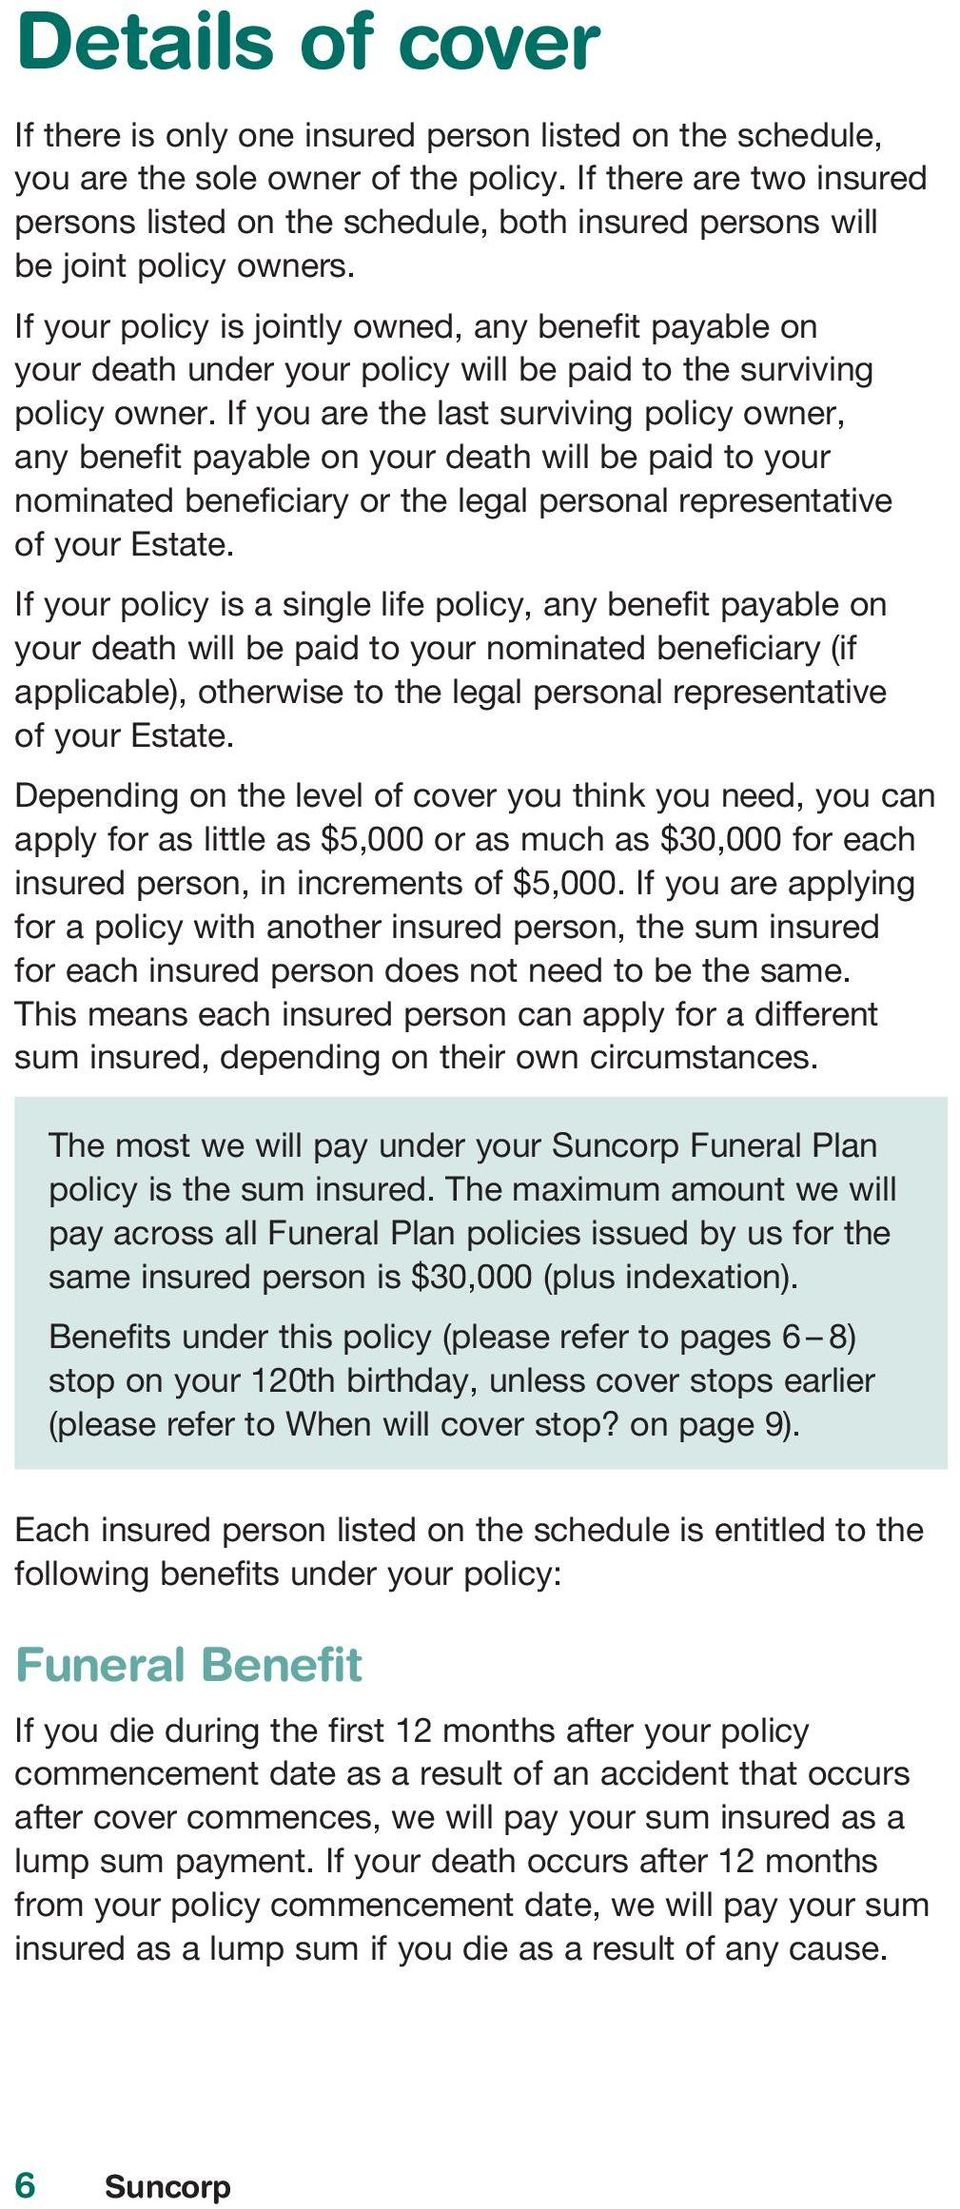 If your policy is jointly owned, any benefit payable on your death under your policy will be paid to the surviving policy owner.